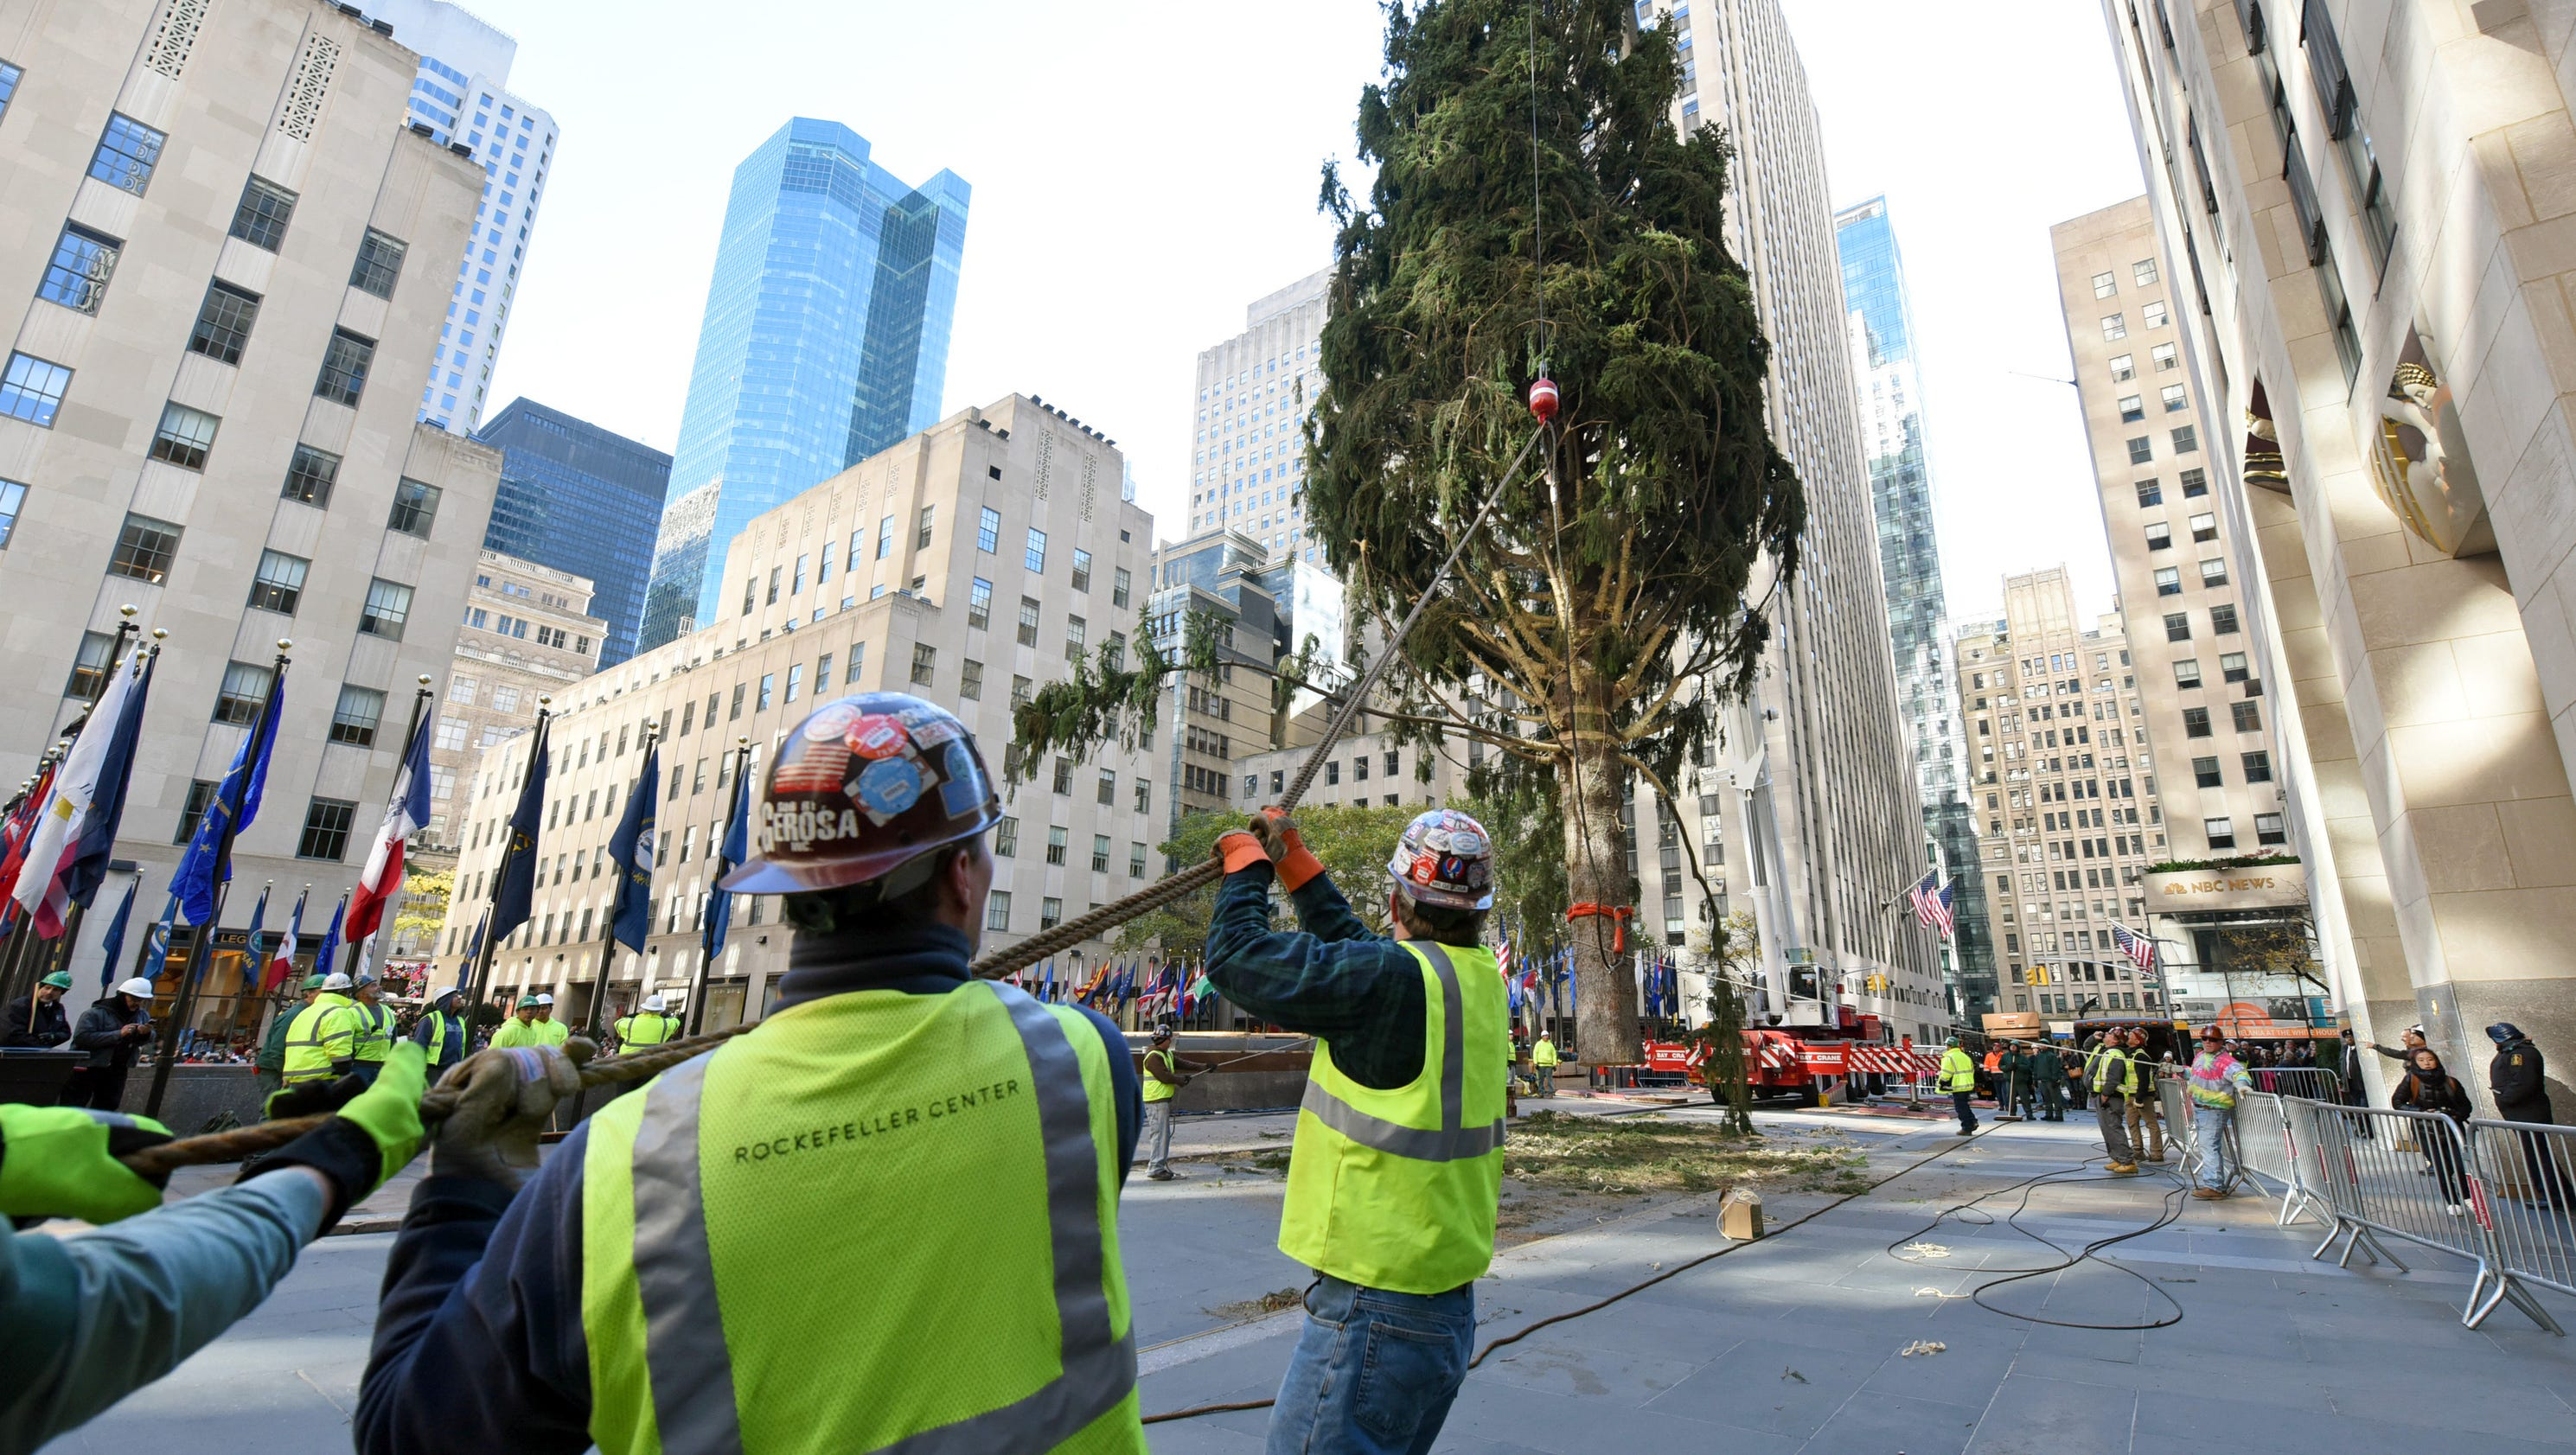 Rockefeller Center Christmas tree arrives in NYC